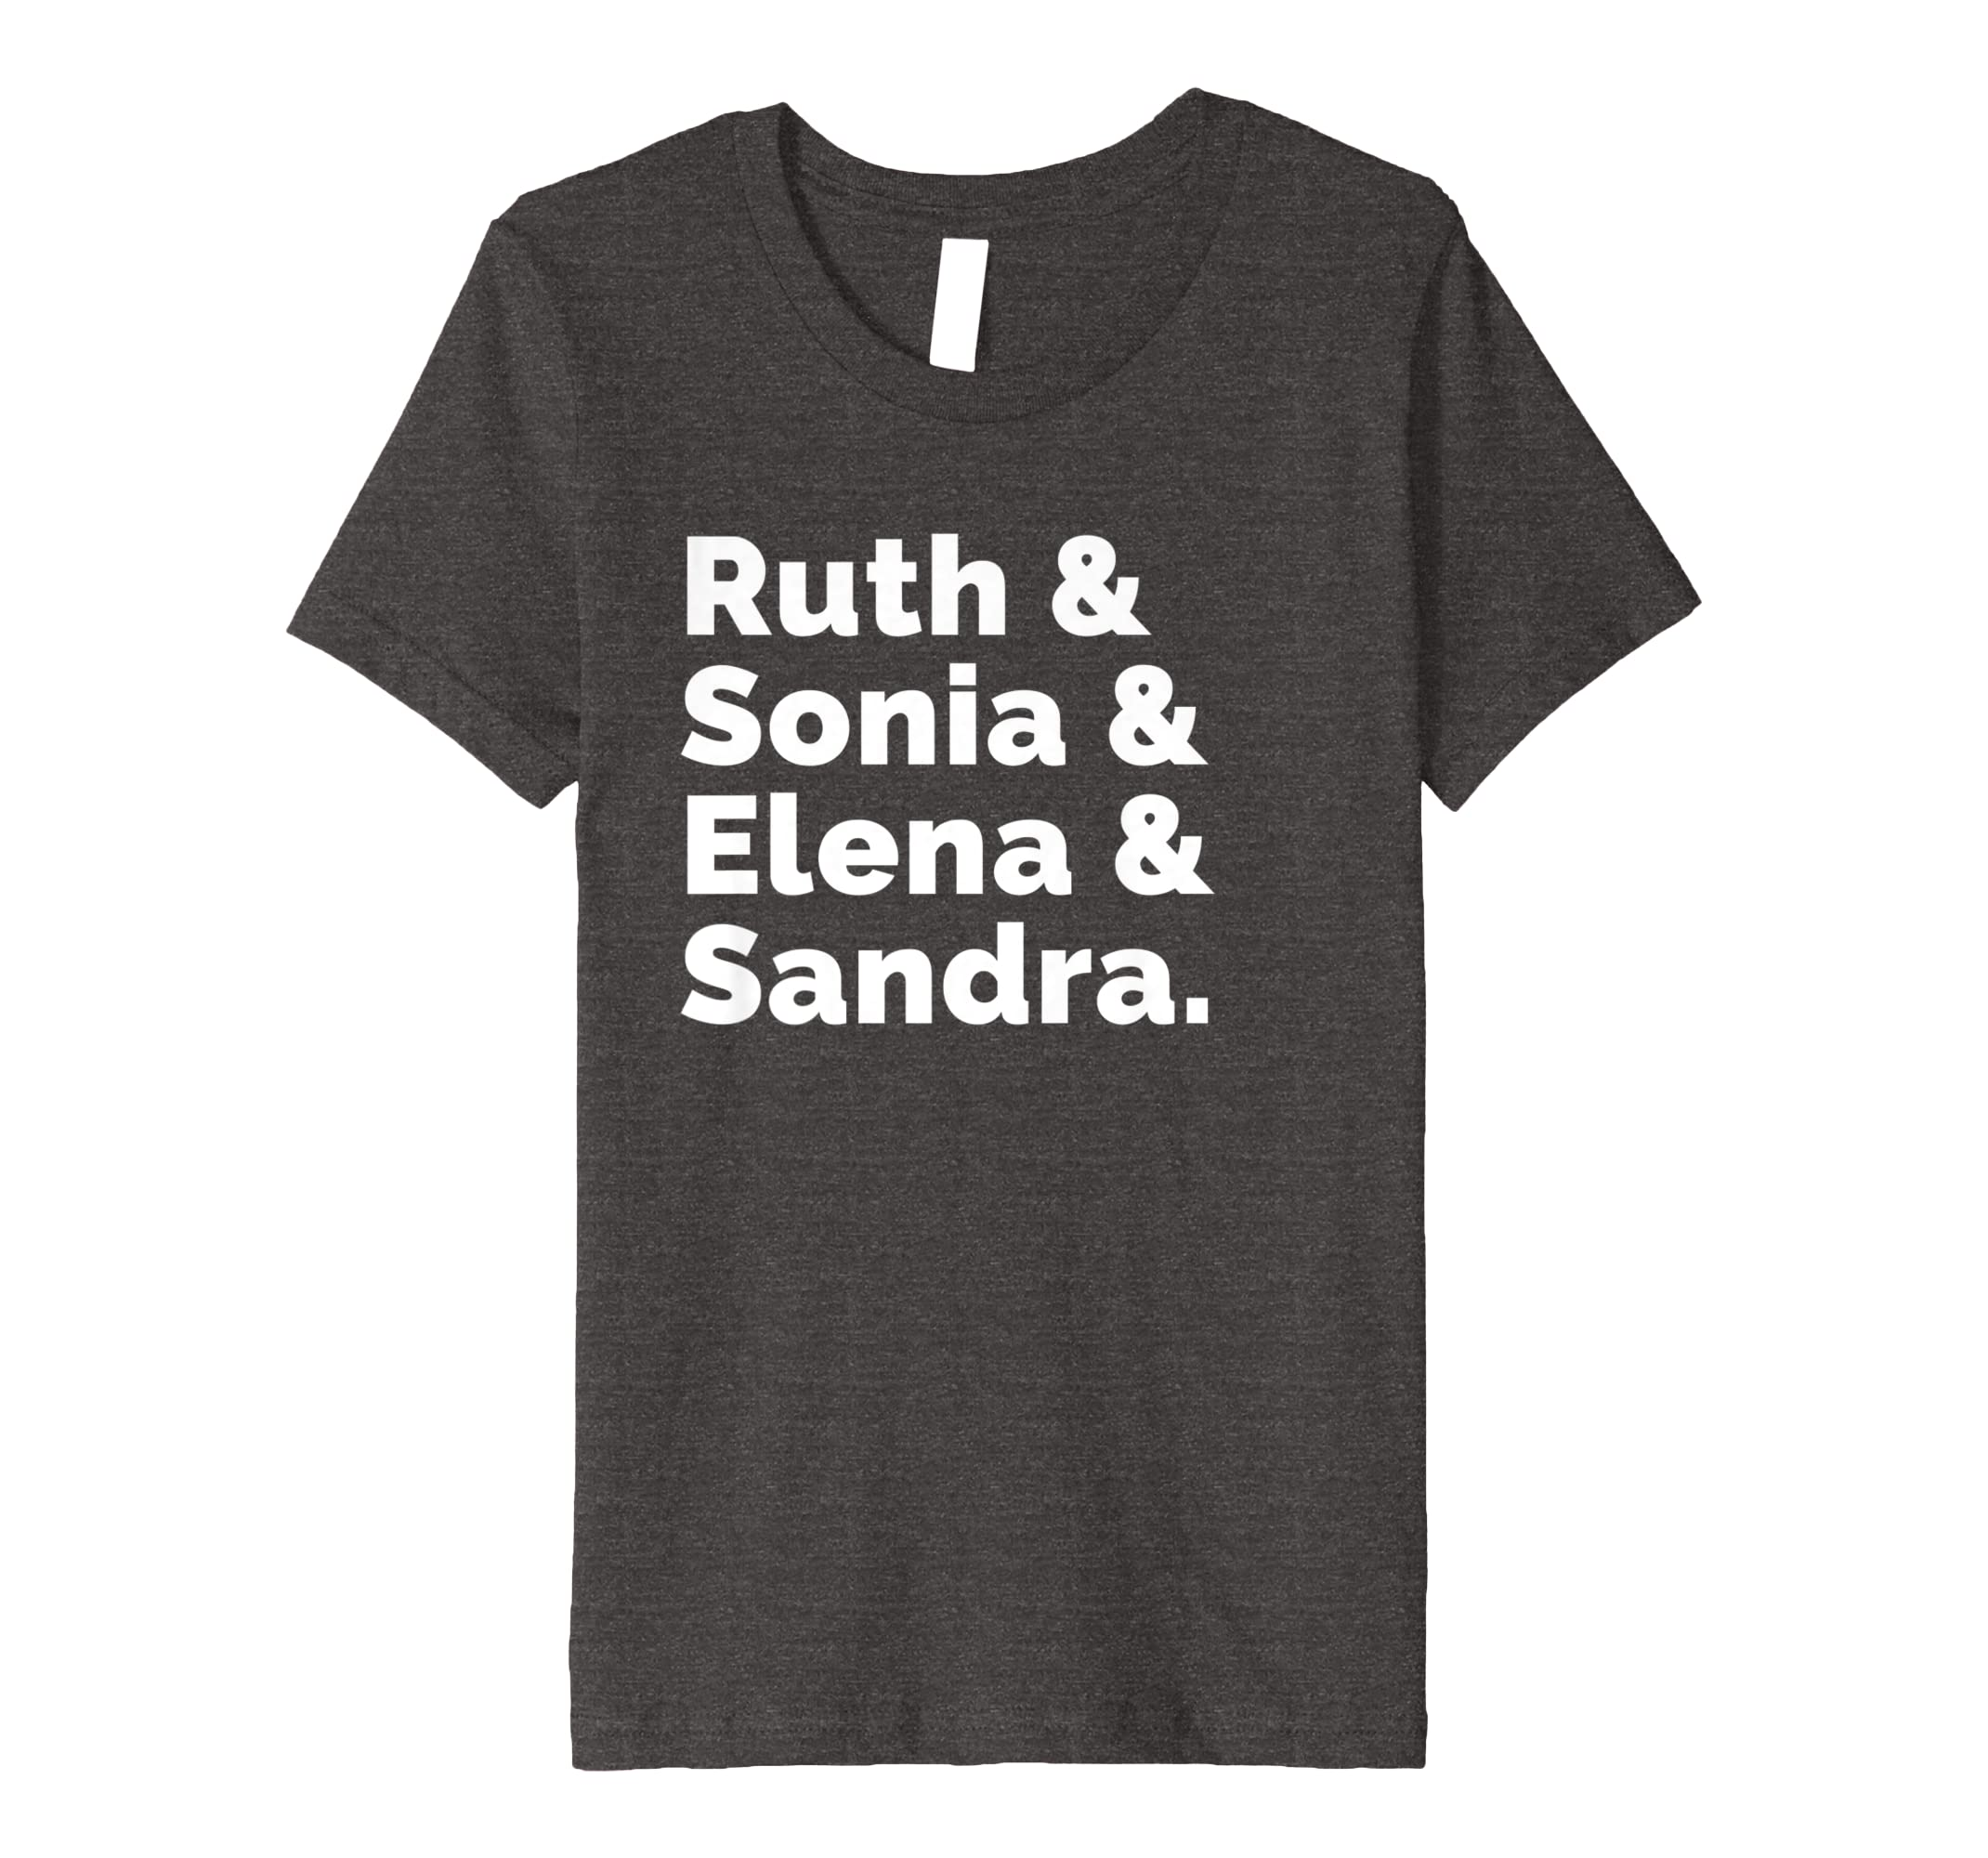 49aed9d05fee Amazon.com: Ruth Sonia Elena Sandra Feminist Justices T-Shirt: Clothing